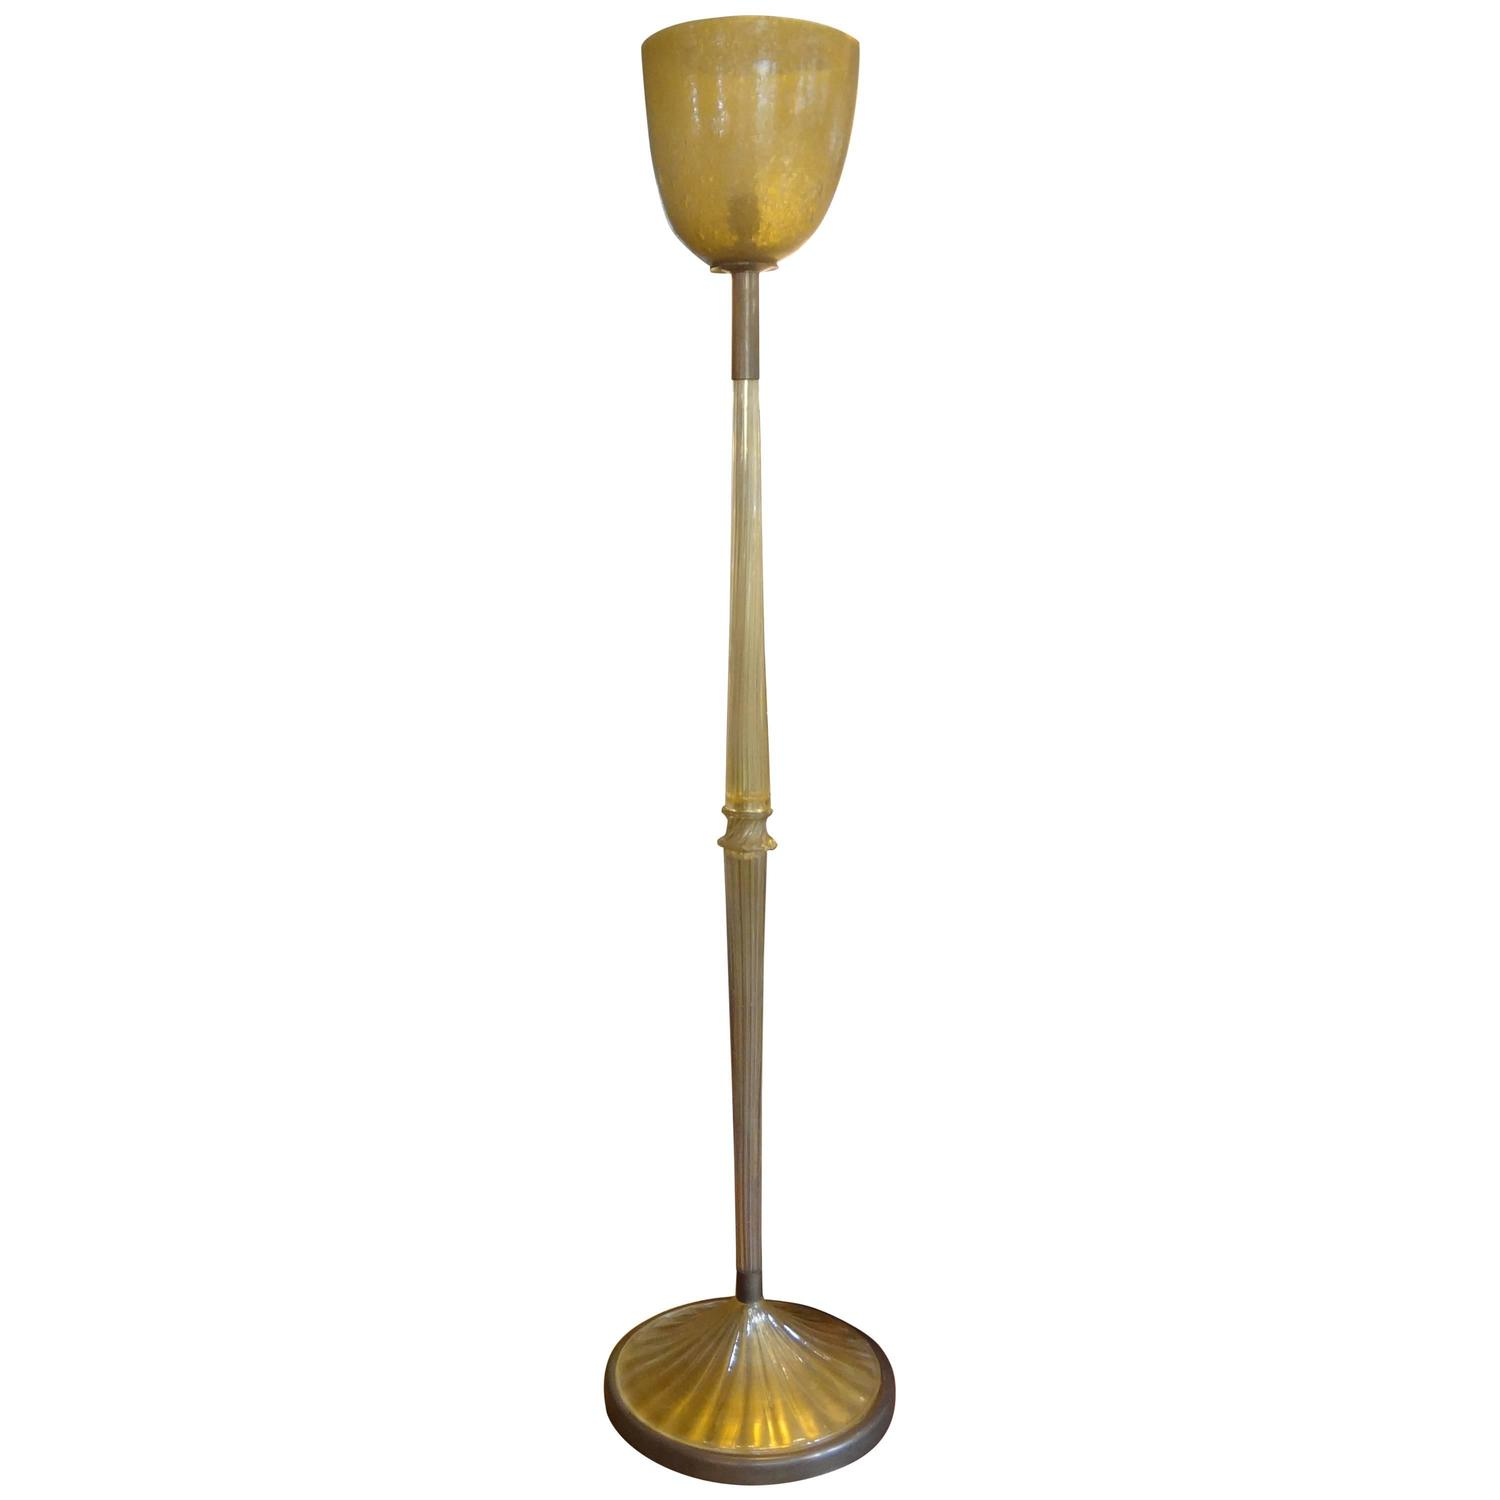 1930s Floor Lamps - 286 For Sale at 1stdibs